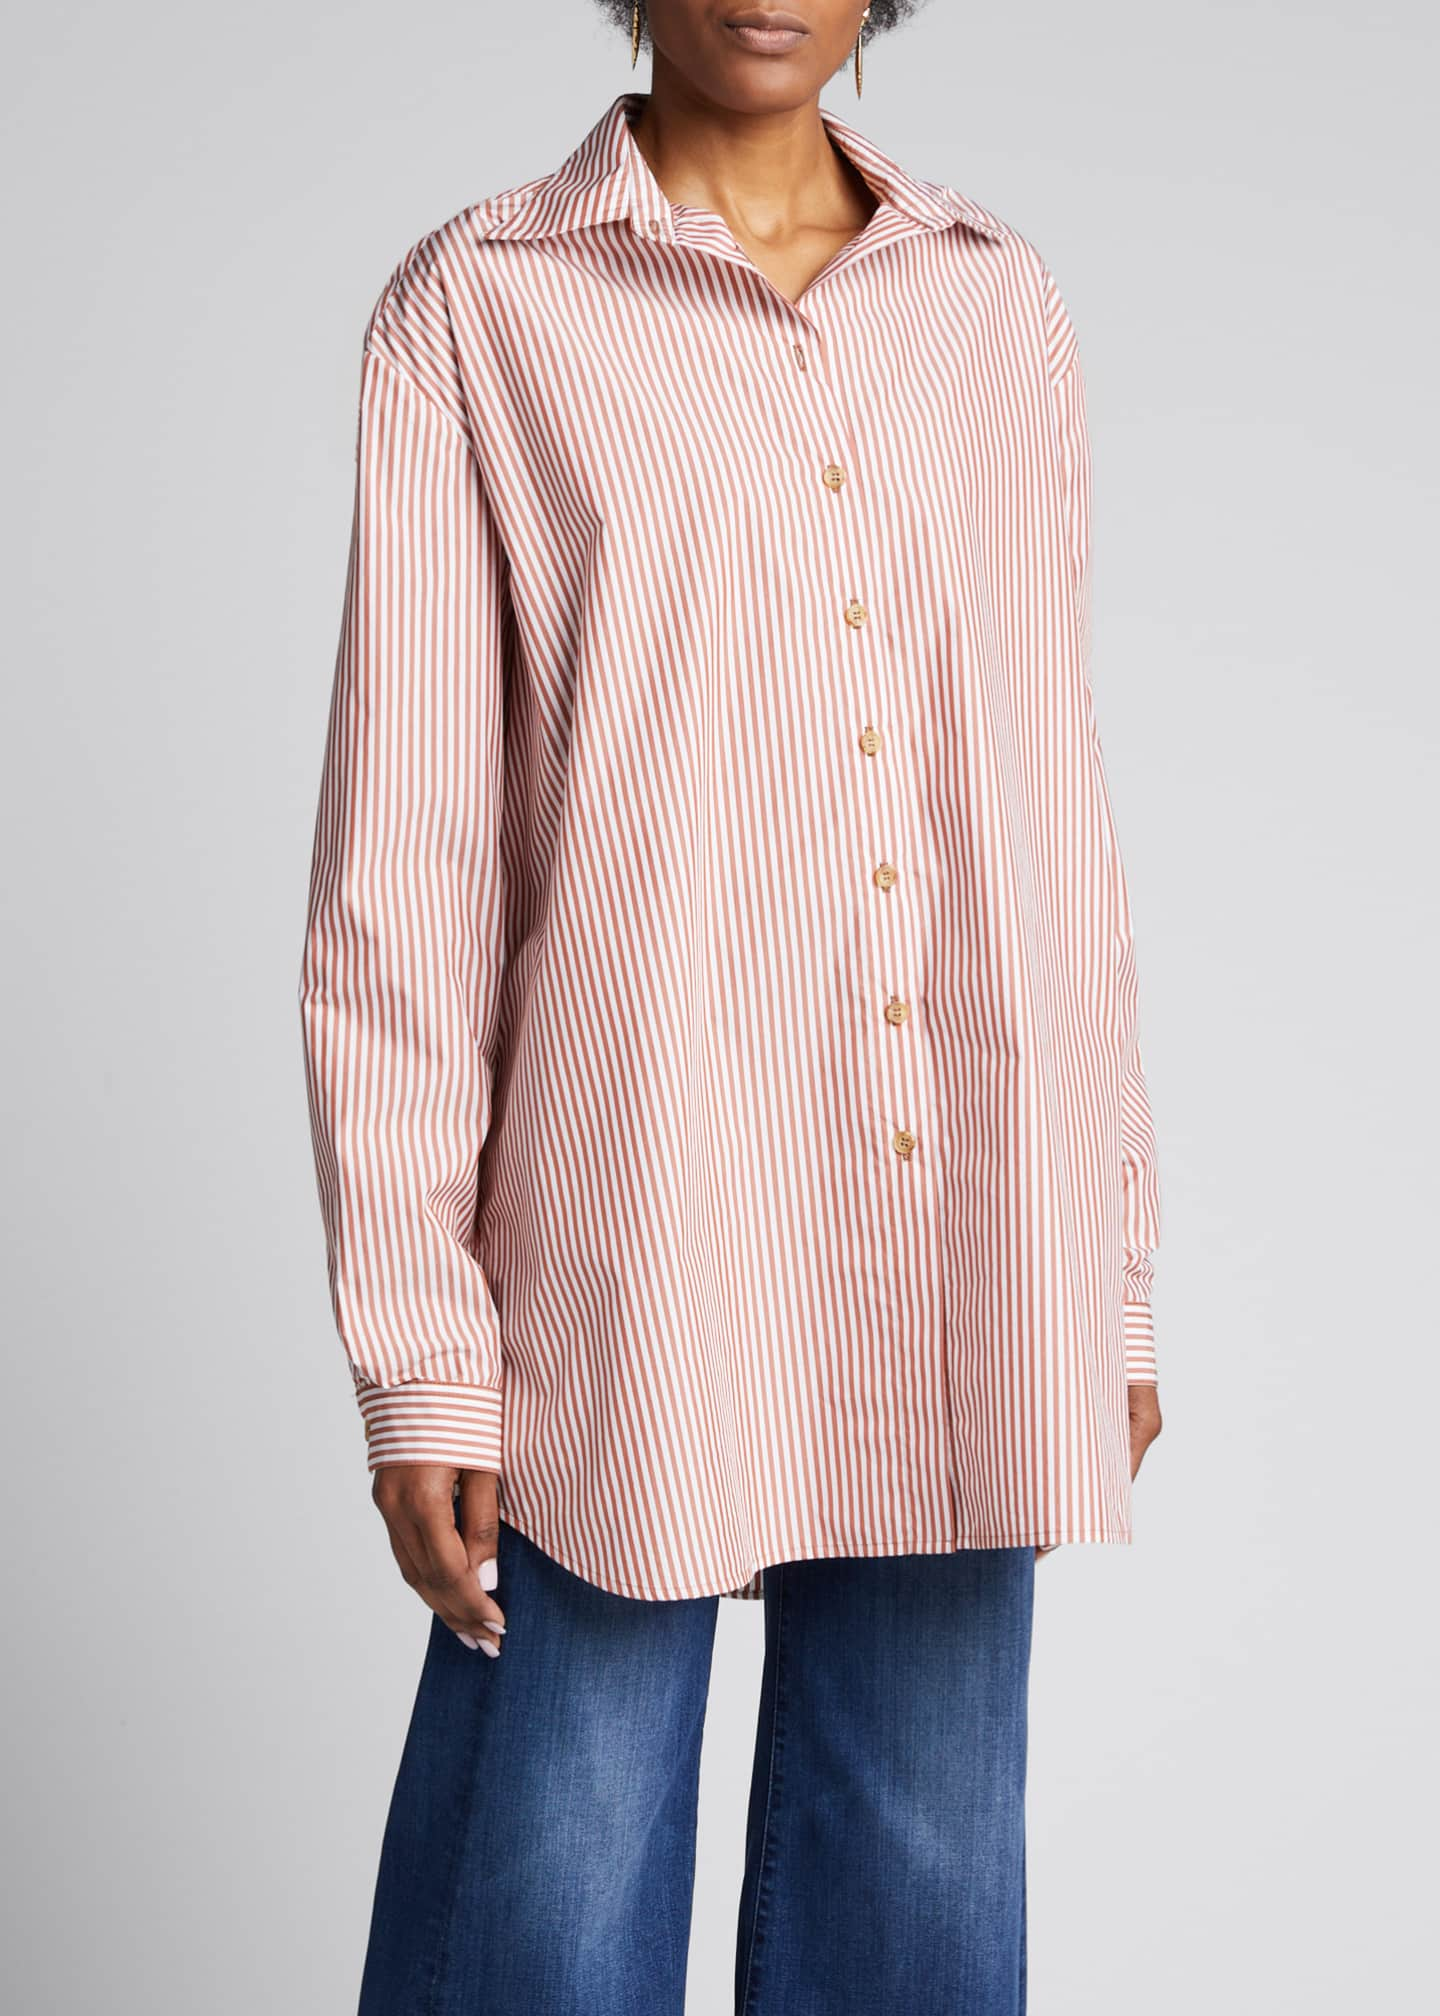 Image 3 of 5: Alfie Oversized Striped Button-Down Shirt